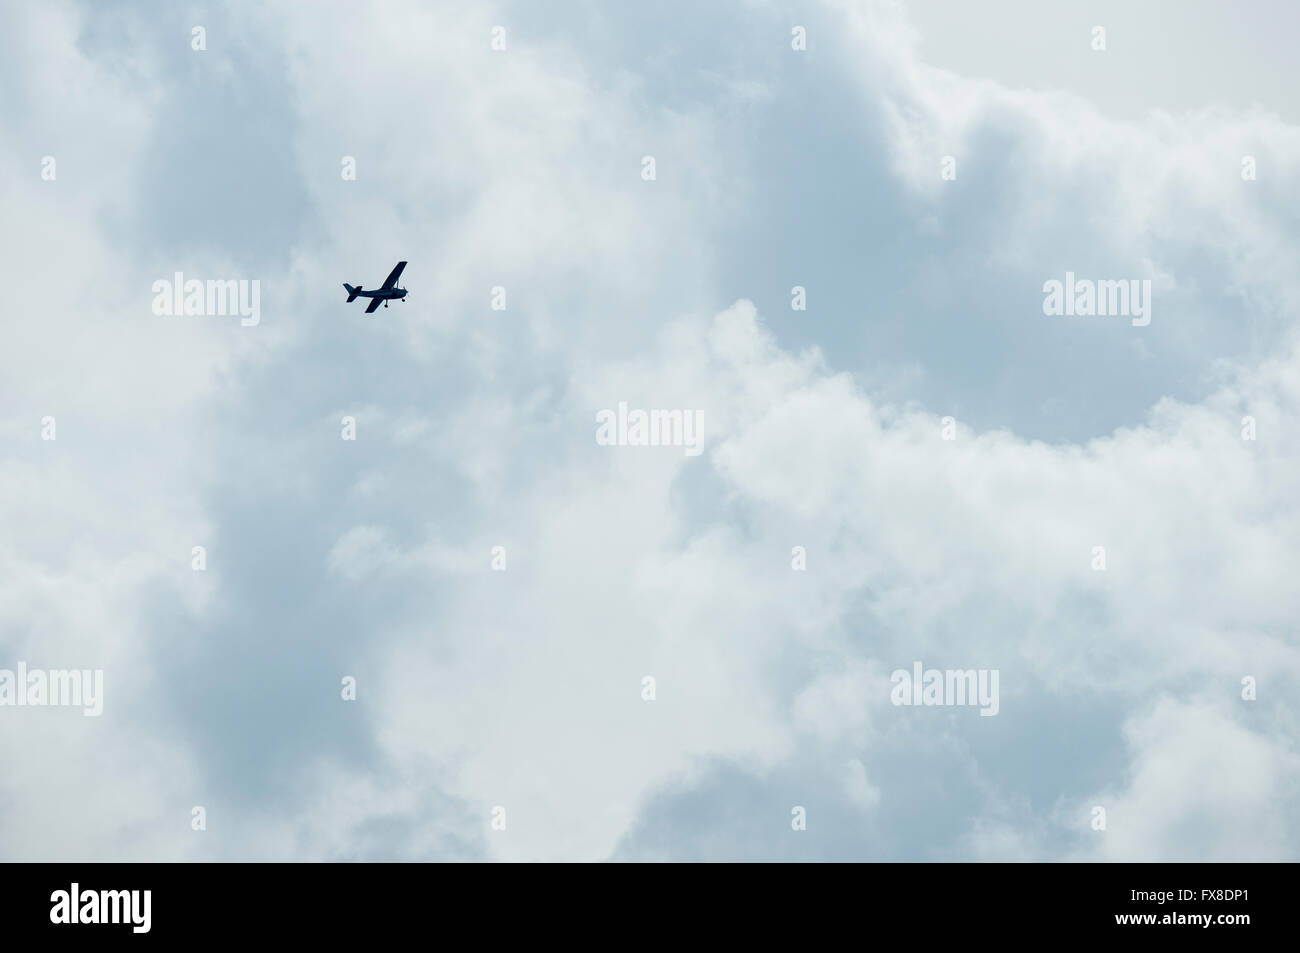 Smal prop plane against cloudy ominus sky - Stock Image